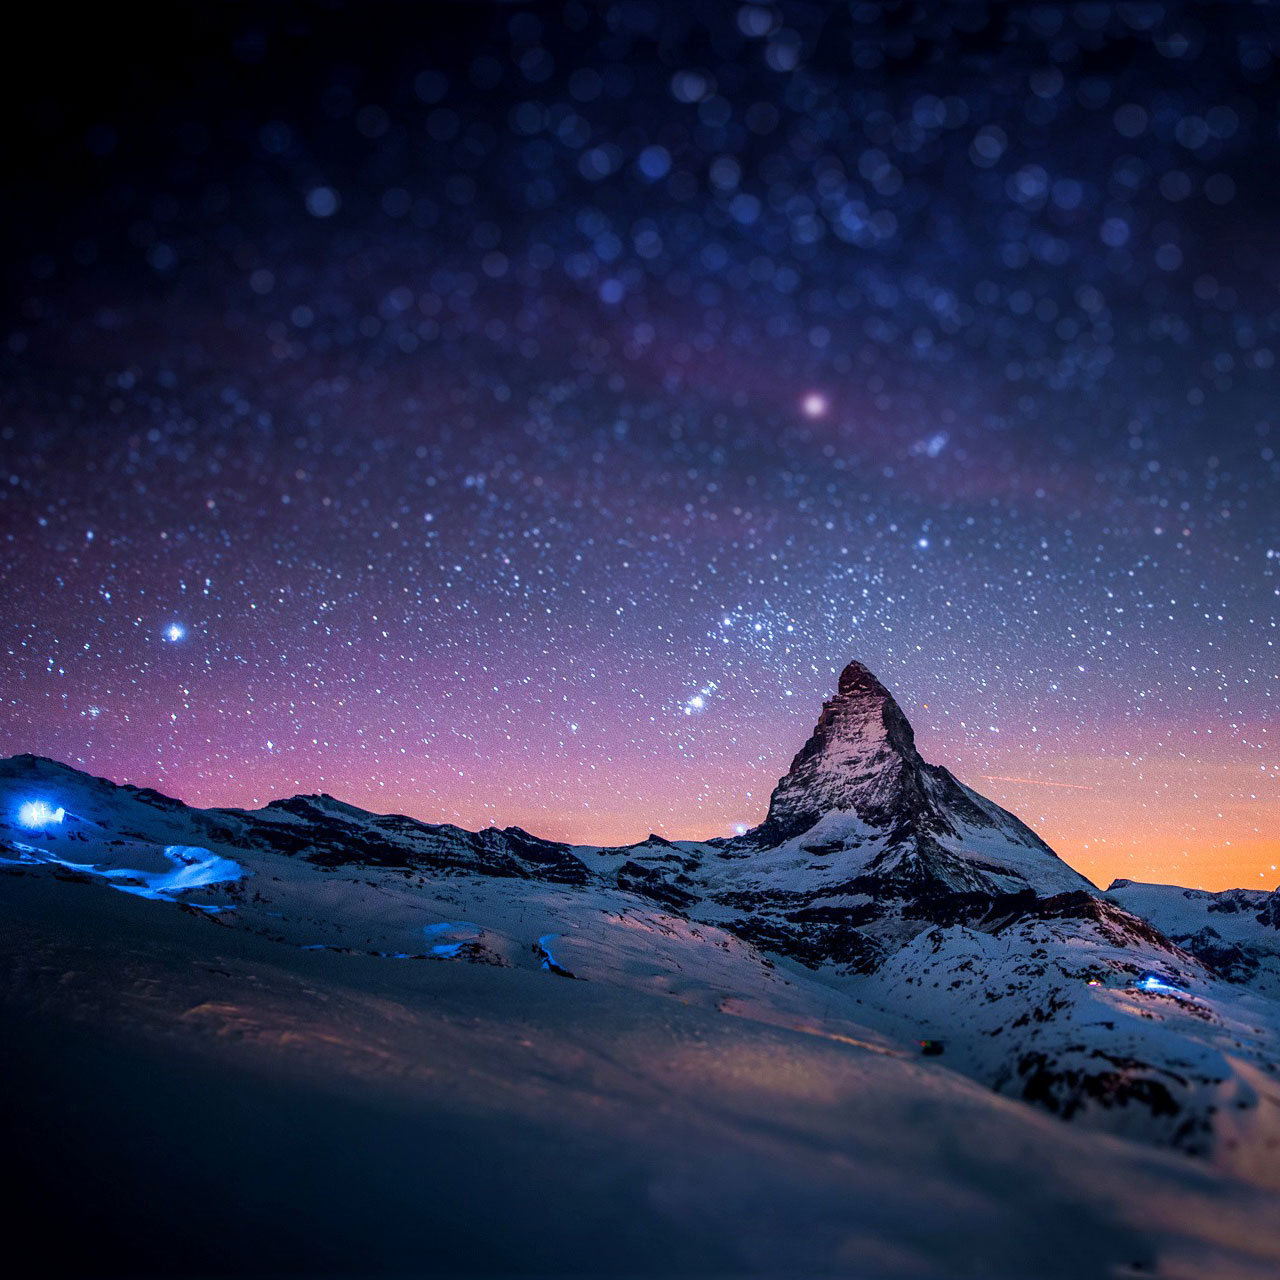 Samsung Galaxy Tab 101 Stars and snow night in the Alps wallpapers 1280x1280